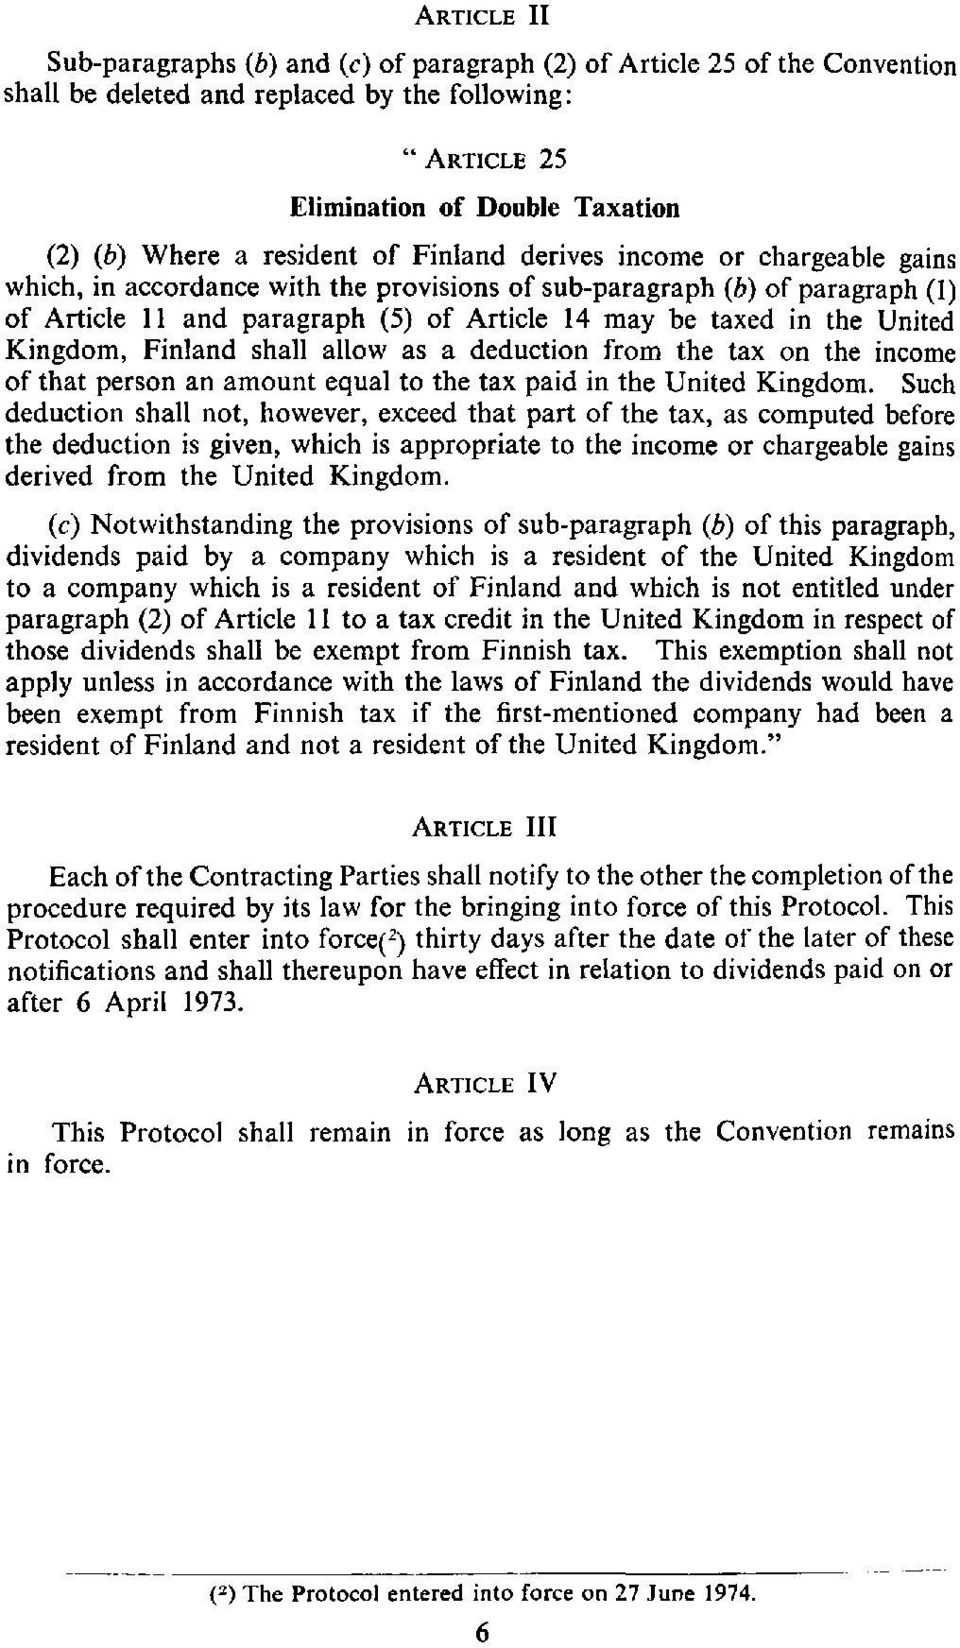 United Kingdom, Finland shall allow as a deduction from the tax on the income of that person an amount equal to the tax paid in the United Kingdom.